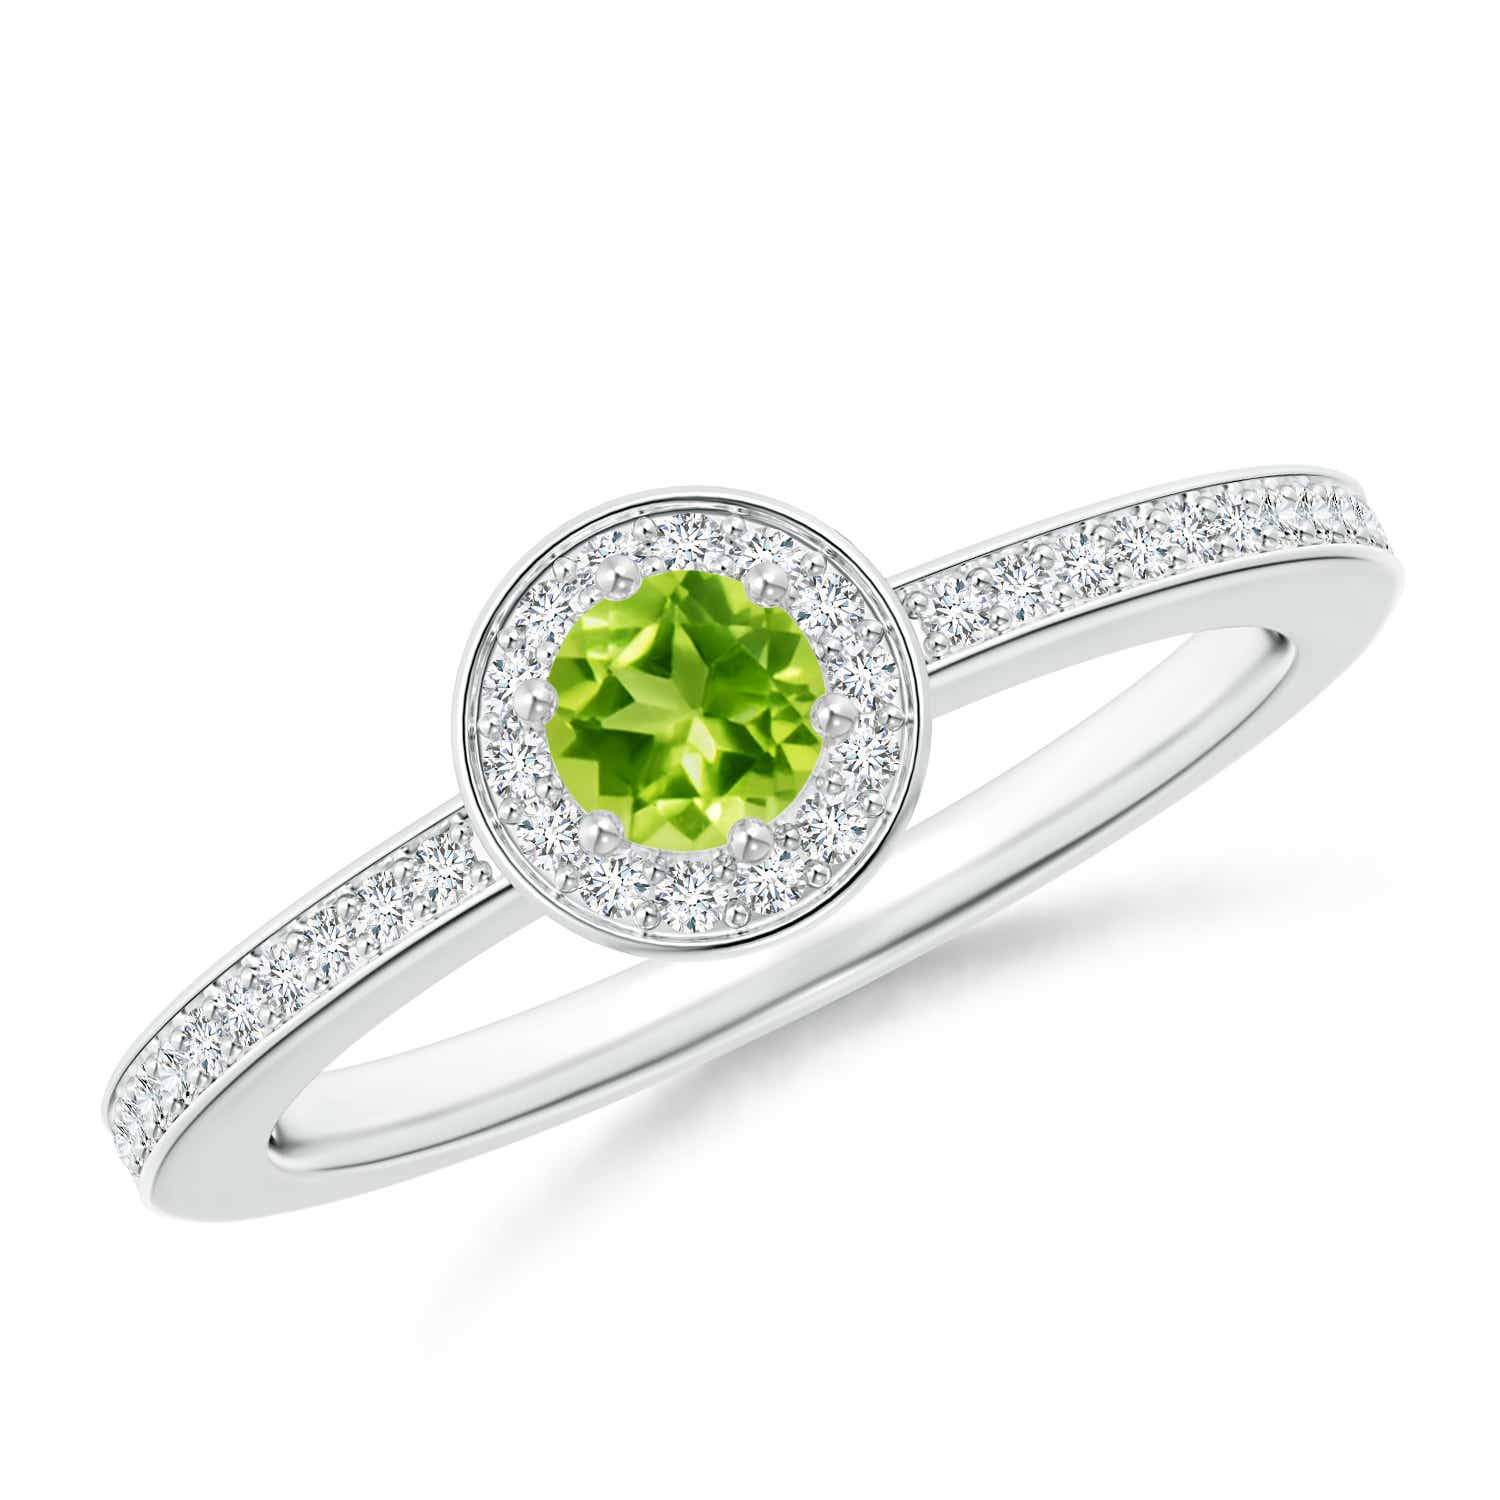 luxury jewelry us lxrandco estate vintage fr large pre en peridot tone engagement silver rings platinum owned diamond ring